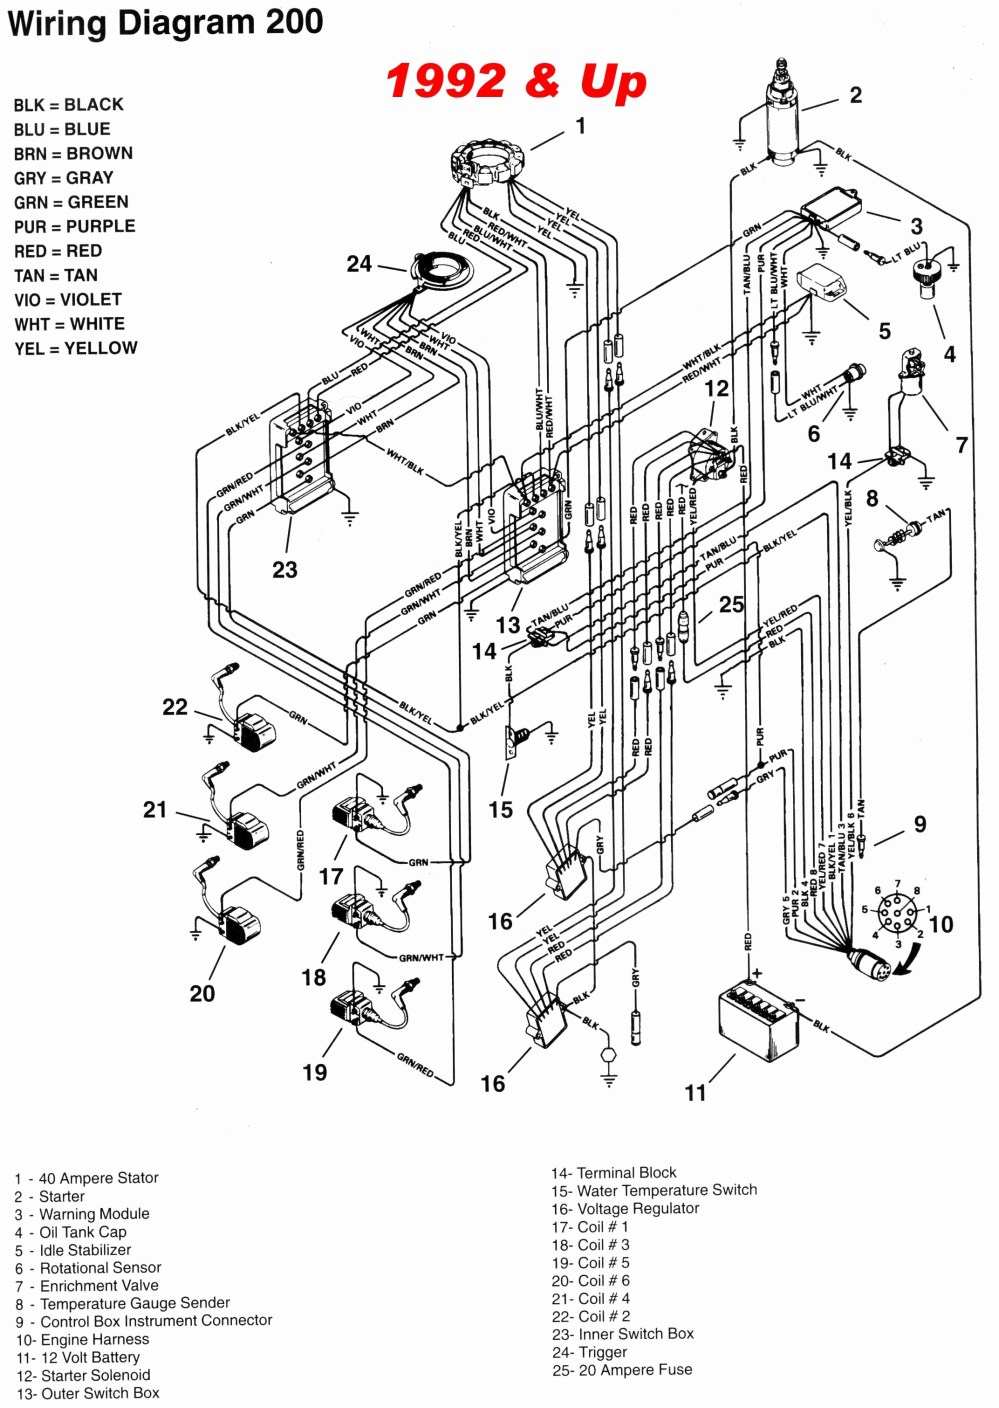 medium resolution of omc wiring diagrams free wiring diagram centreomc wiring schematic wiring diagrams konsult1992 omc outboard wiring harness